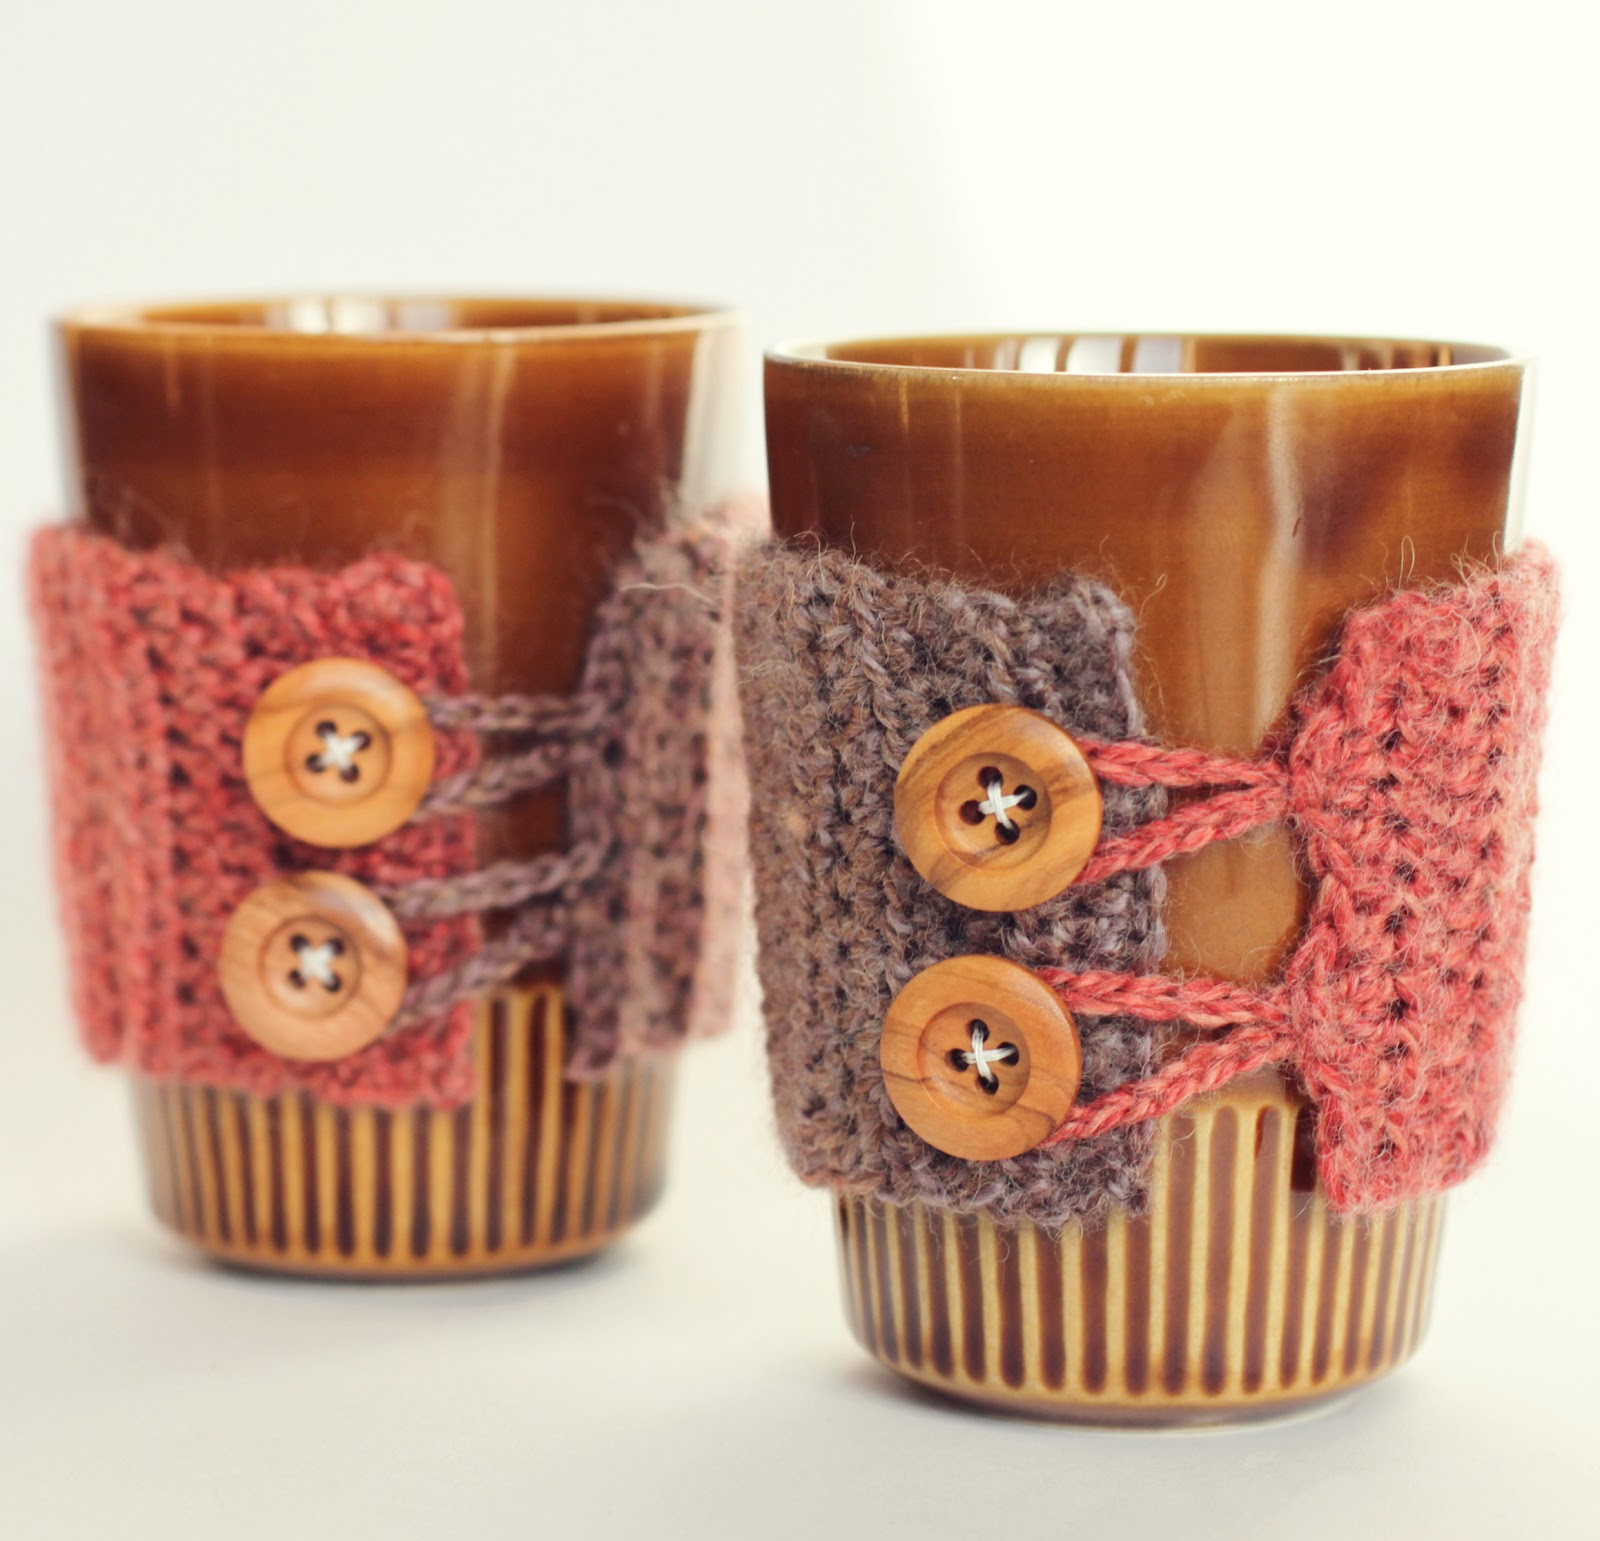 Crochet Coffee Cup Cozy Lovely L♥valizious Mug Cozy Tutorial Of Crochet Coffee Cup Cozy Best Of Craftdrawer Crafts Free Easy to Crochet Mug Cozy Patterns